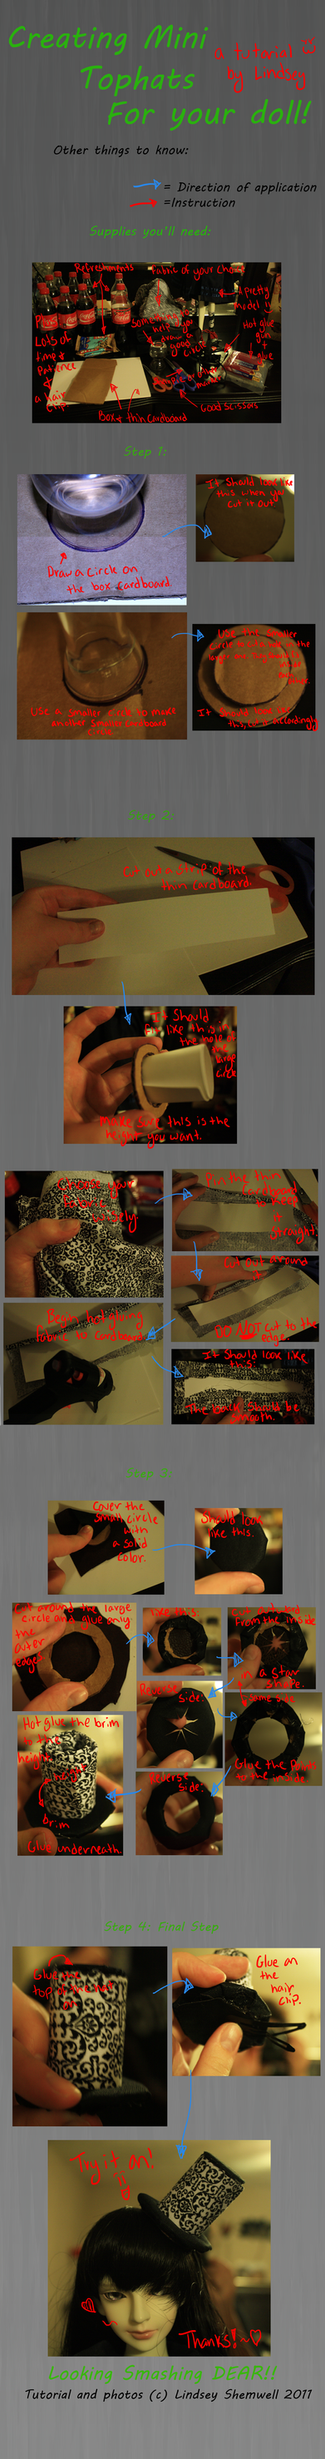 How to make Top Hats for Dolls by lindseyshemwell